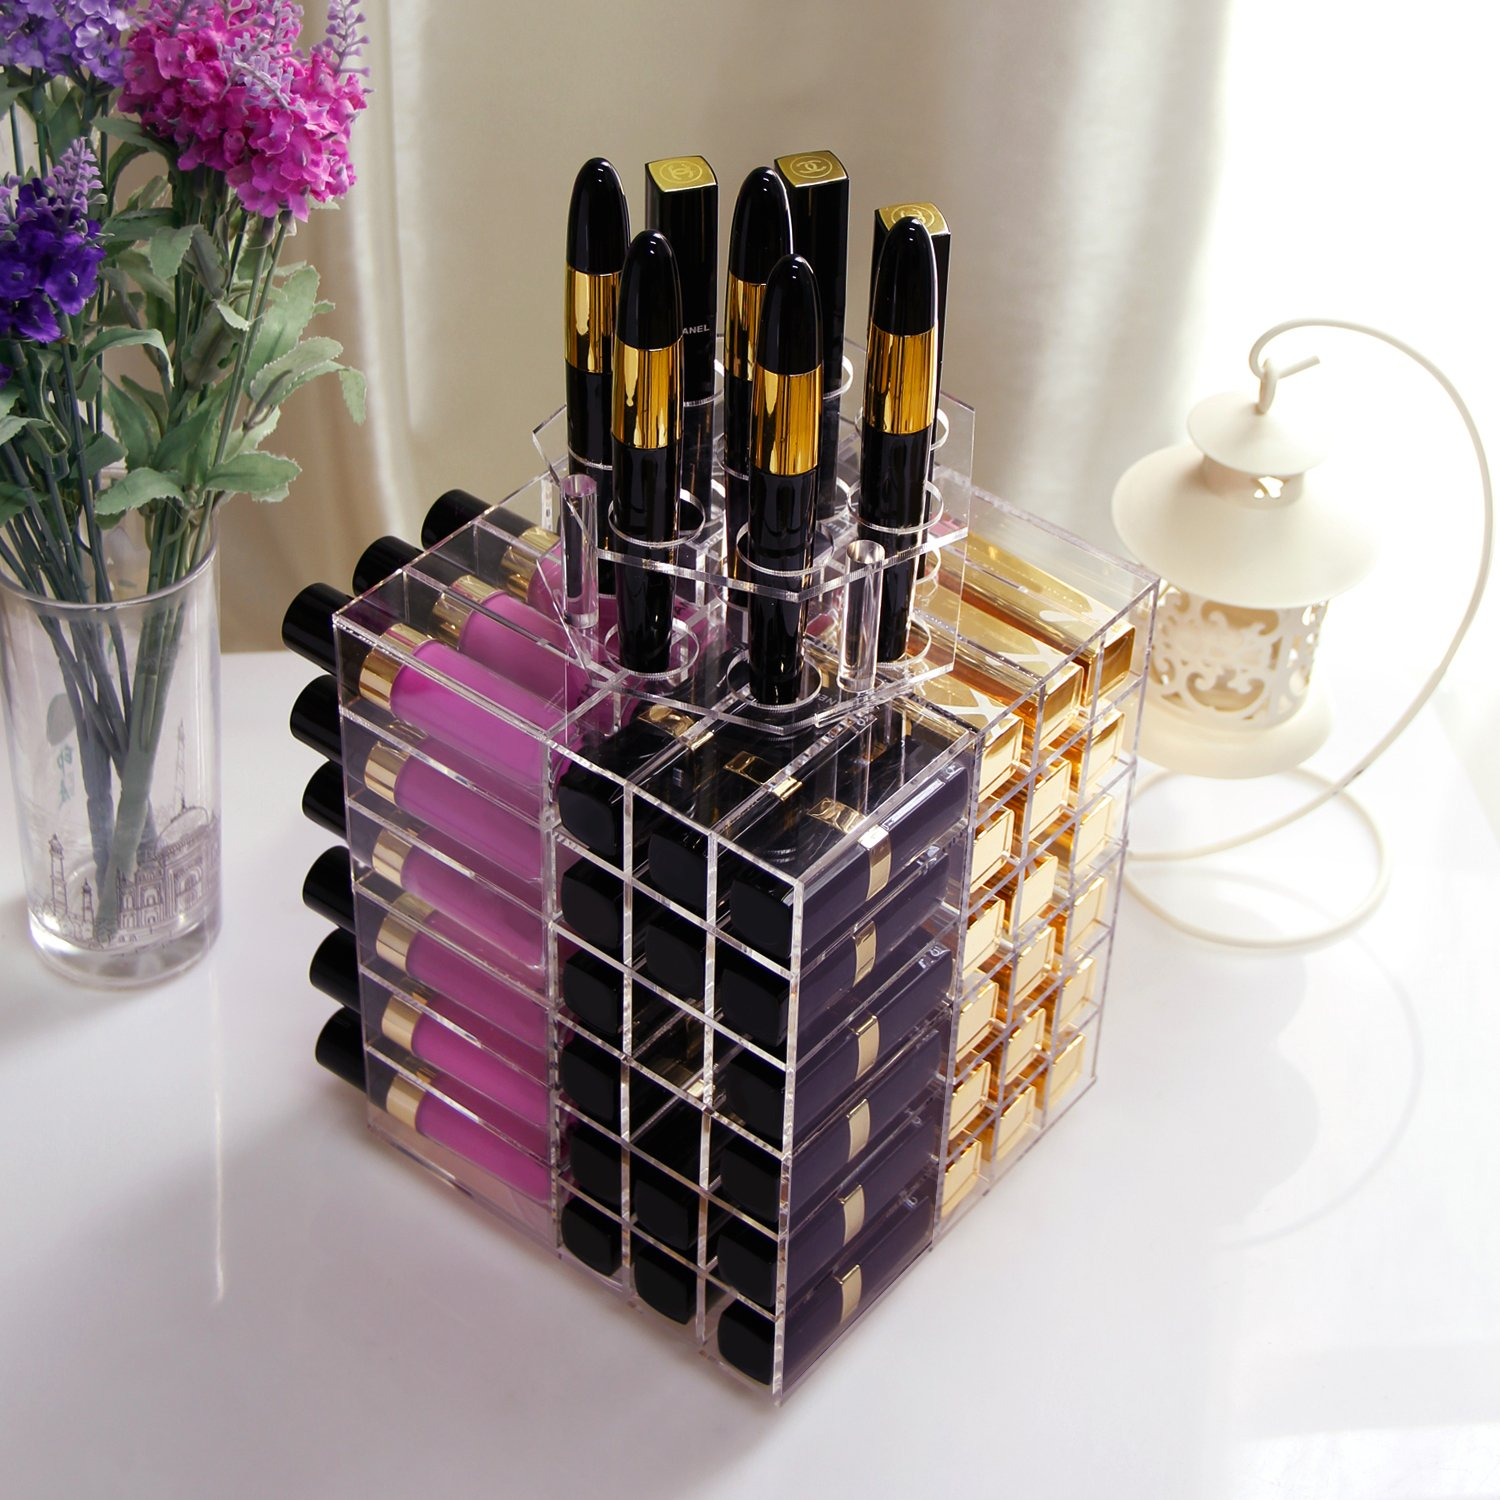 Amazon.com: Lifewit Spinning Lipstick Tower Premium Acrylic Rotating  Lipgloss Holder Makeup Organizer 81 Slot Vitreous Cosmetic Storage Box  Solution Large: ...